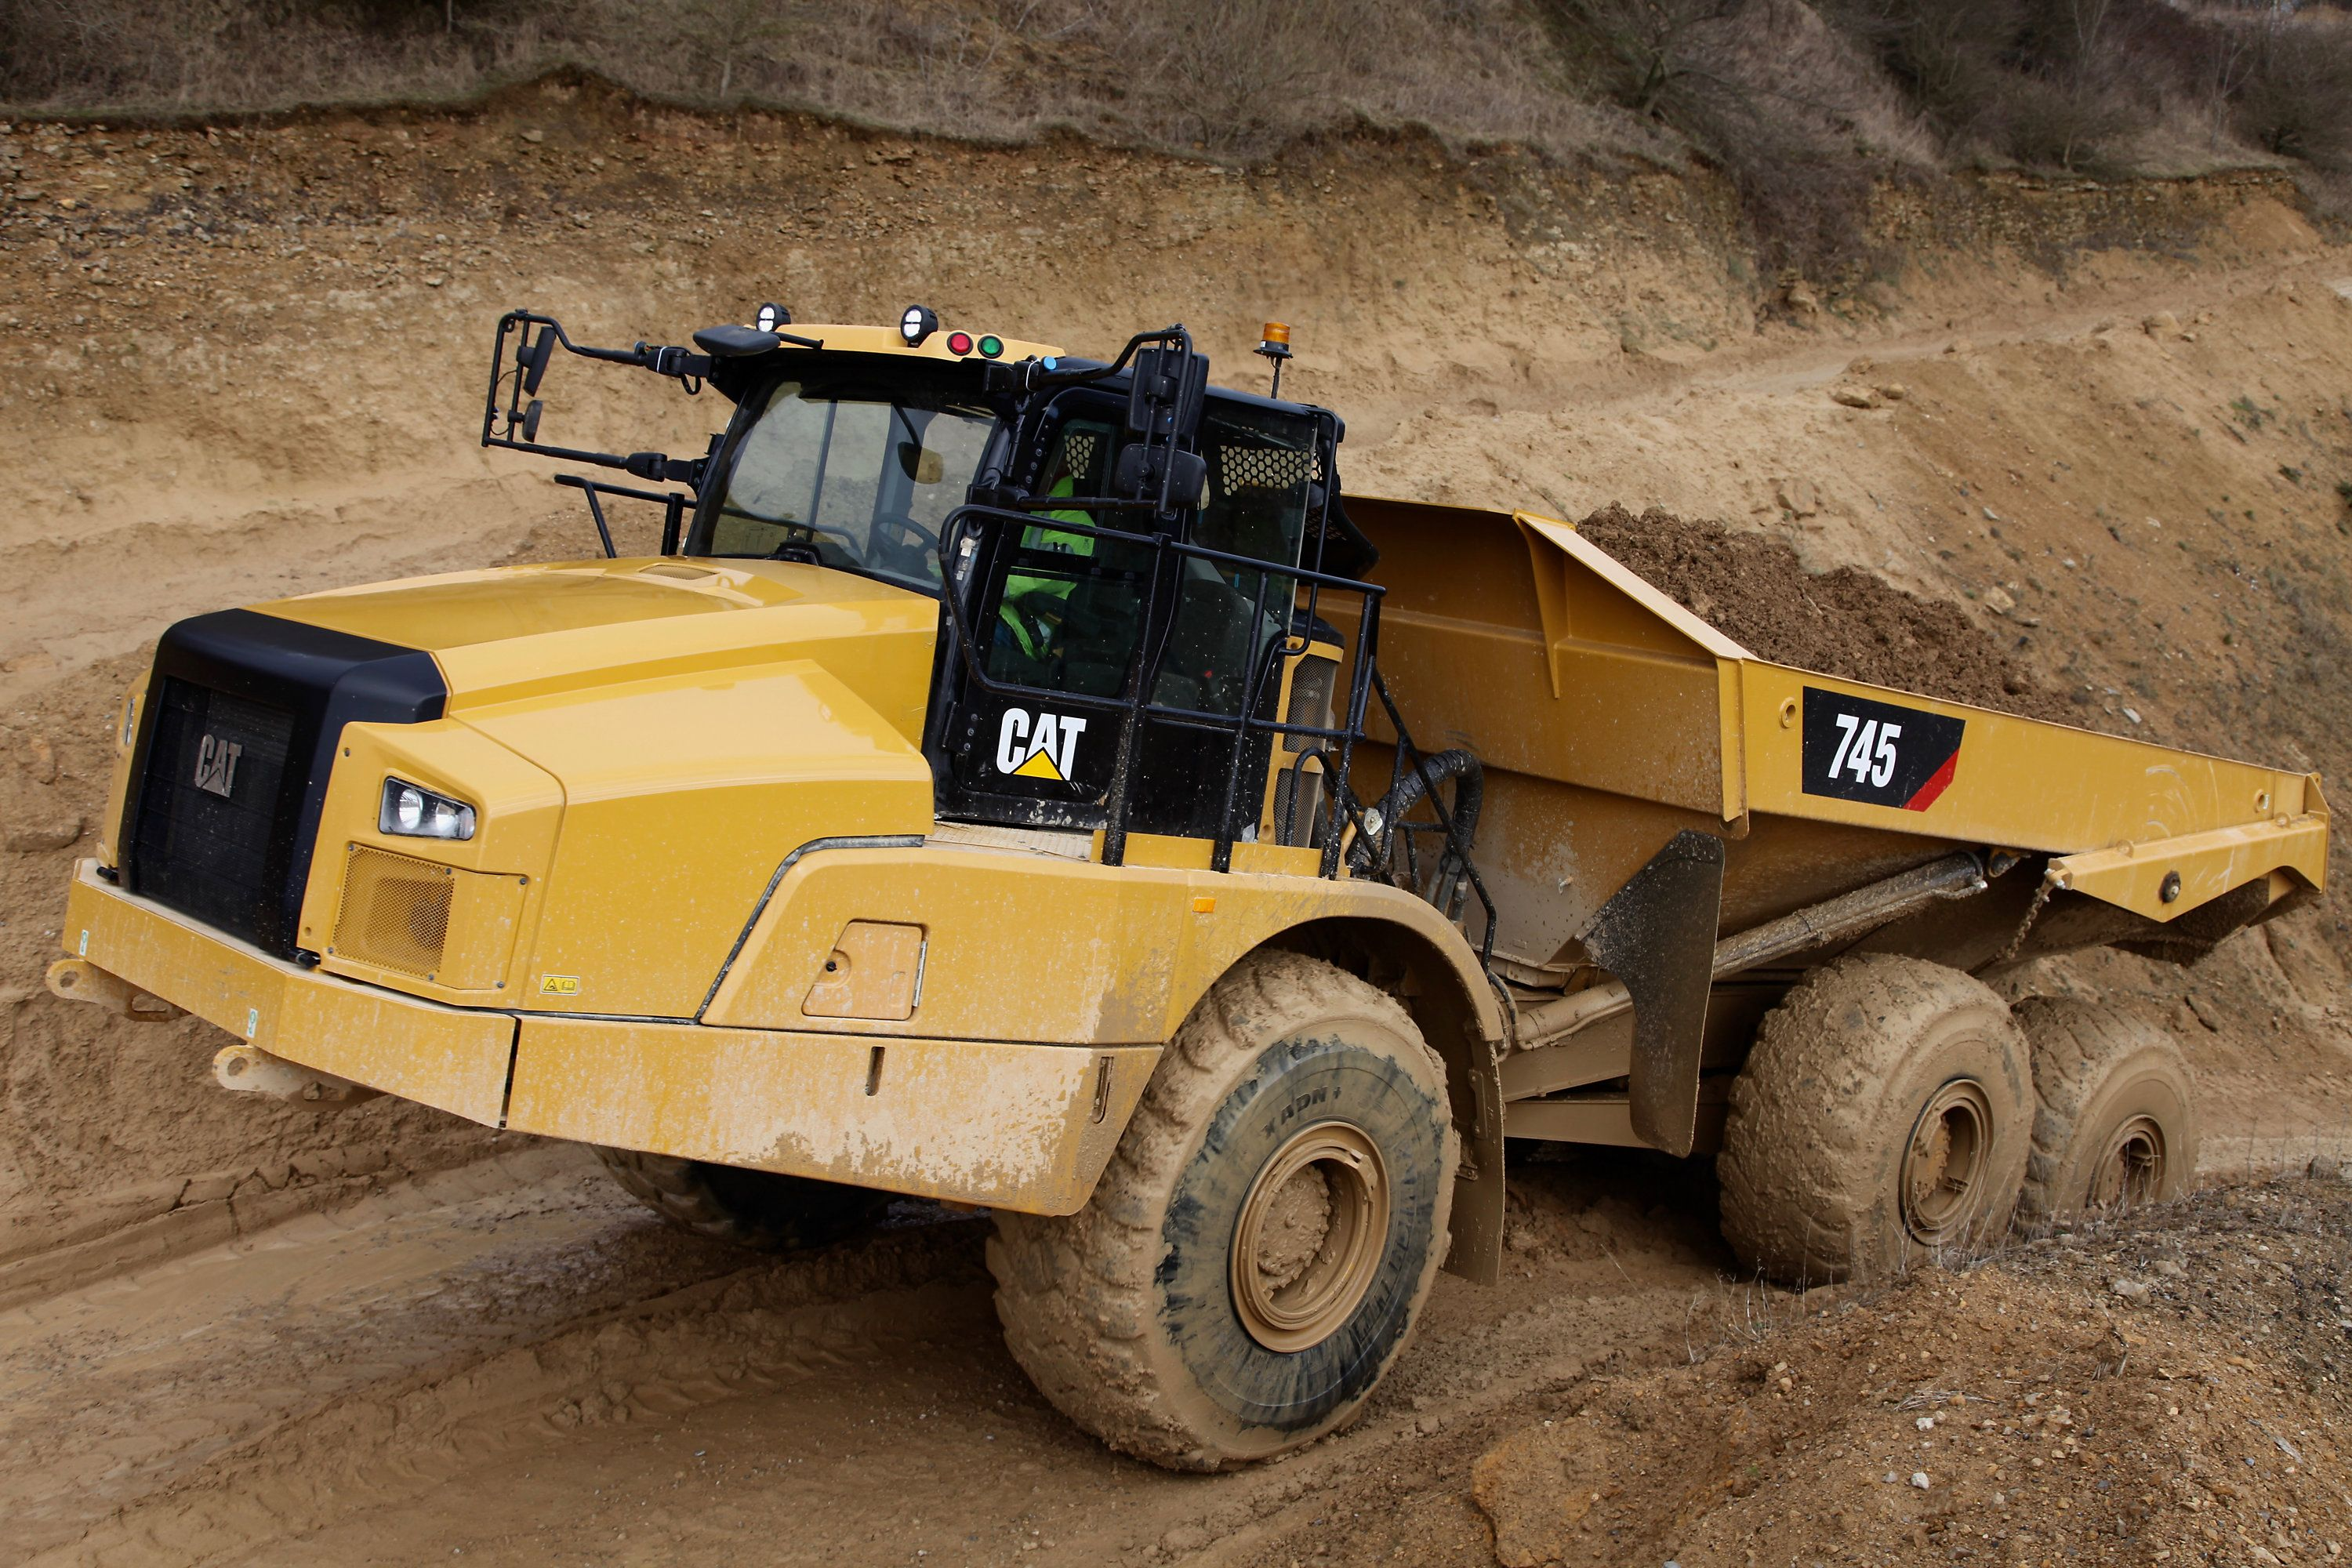 Cat 745 Trucks Articulated Trucks Dump Truck